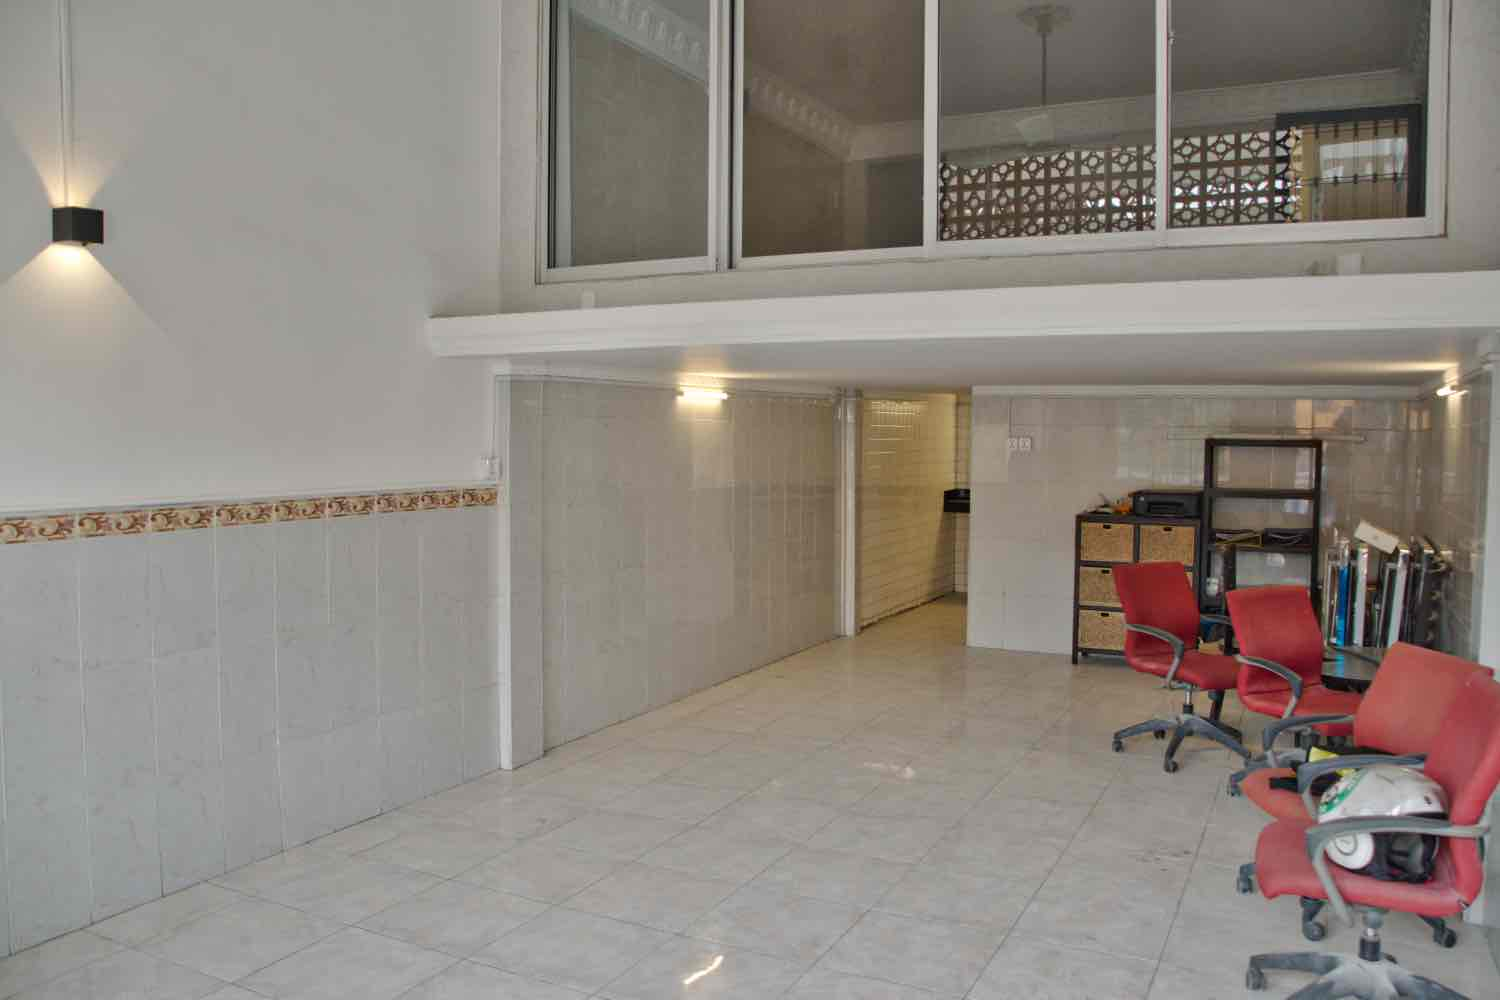 Apartment for sale renovated E1-E2 110.5m2 near Independent Monument